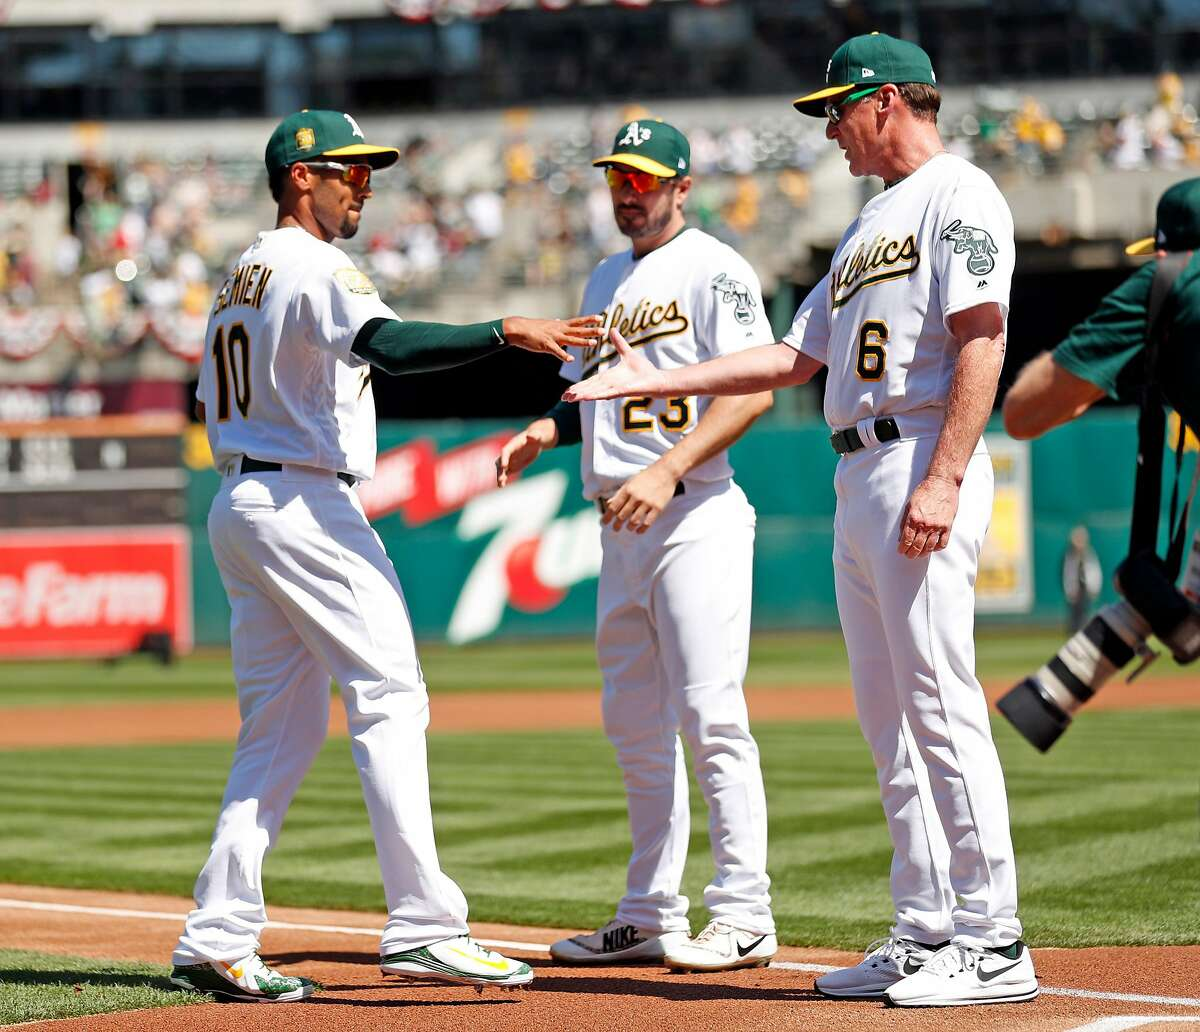 Oakland Athletics' manager Bob Melvin greets Marcus Semien before A's home opener against Los Angeles Angels at Oakland Coliseum in Oakland, Calif., on Thursday, March 29, 2018.